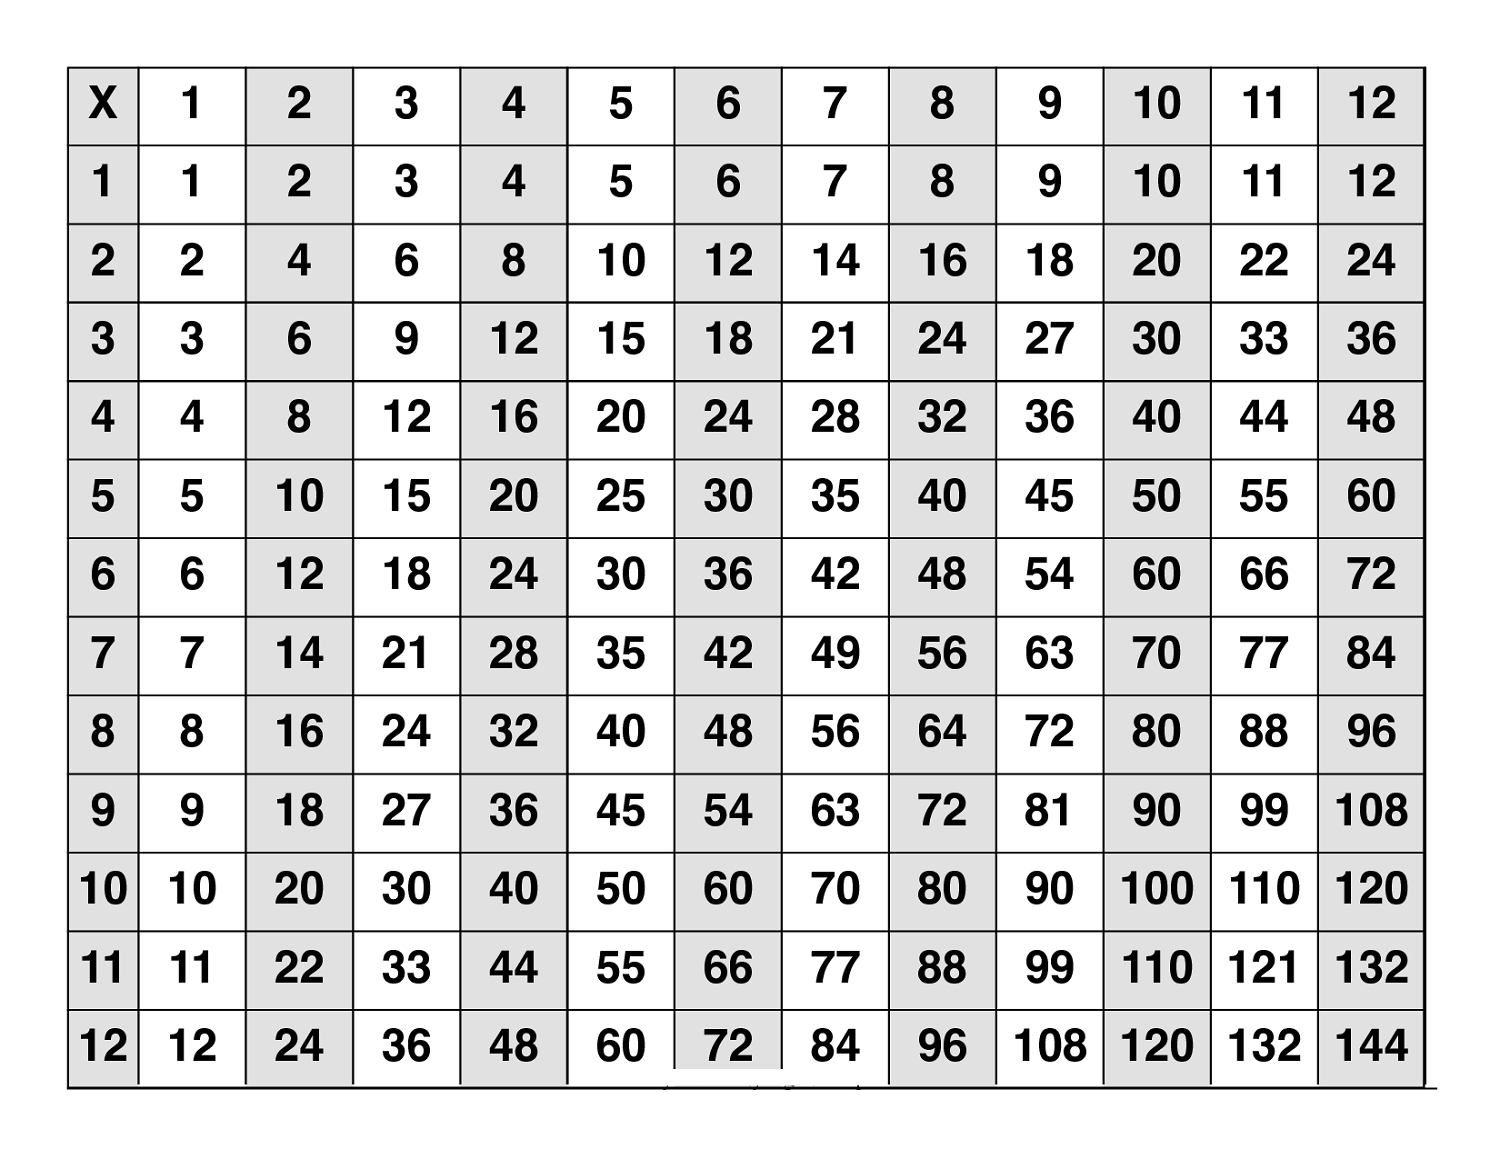 worksheet 60 Multiplication Facts large multiplication table to train memory activity shelter memory